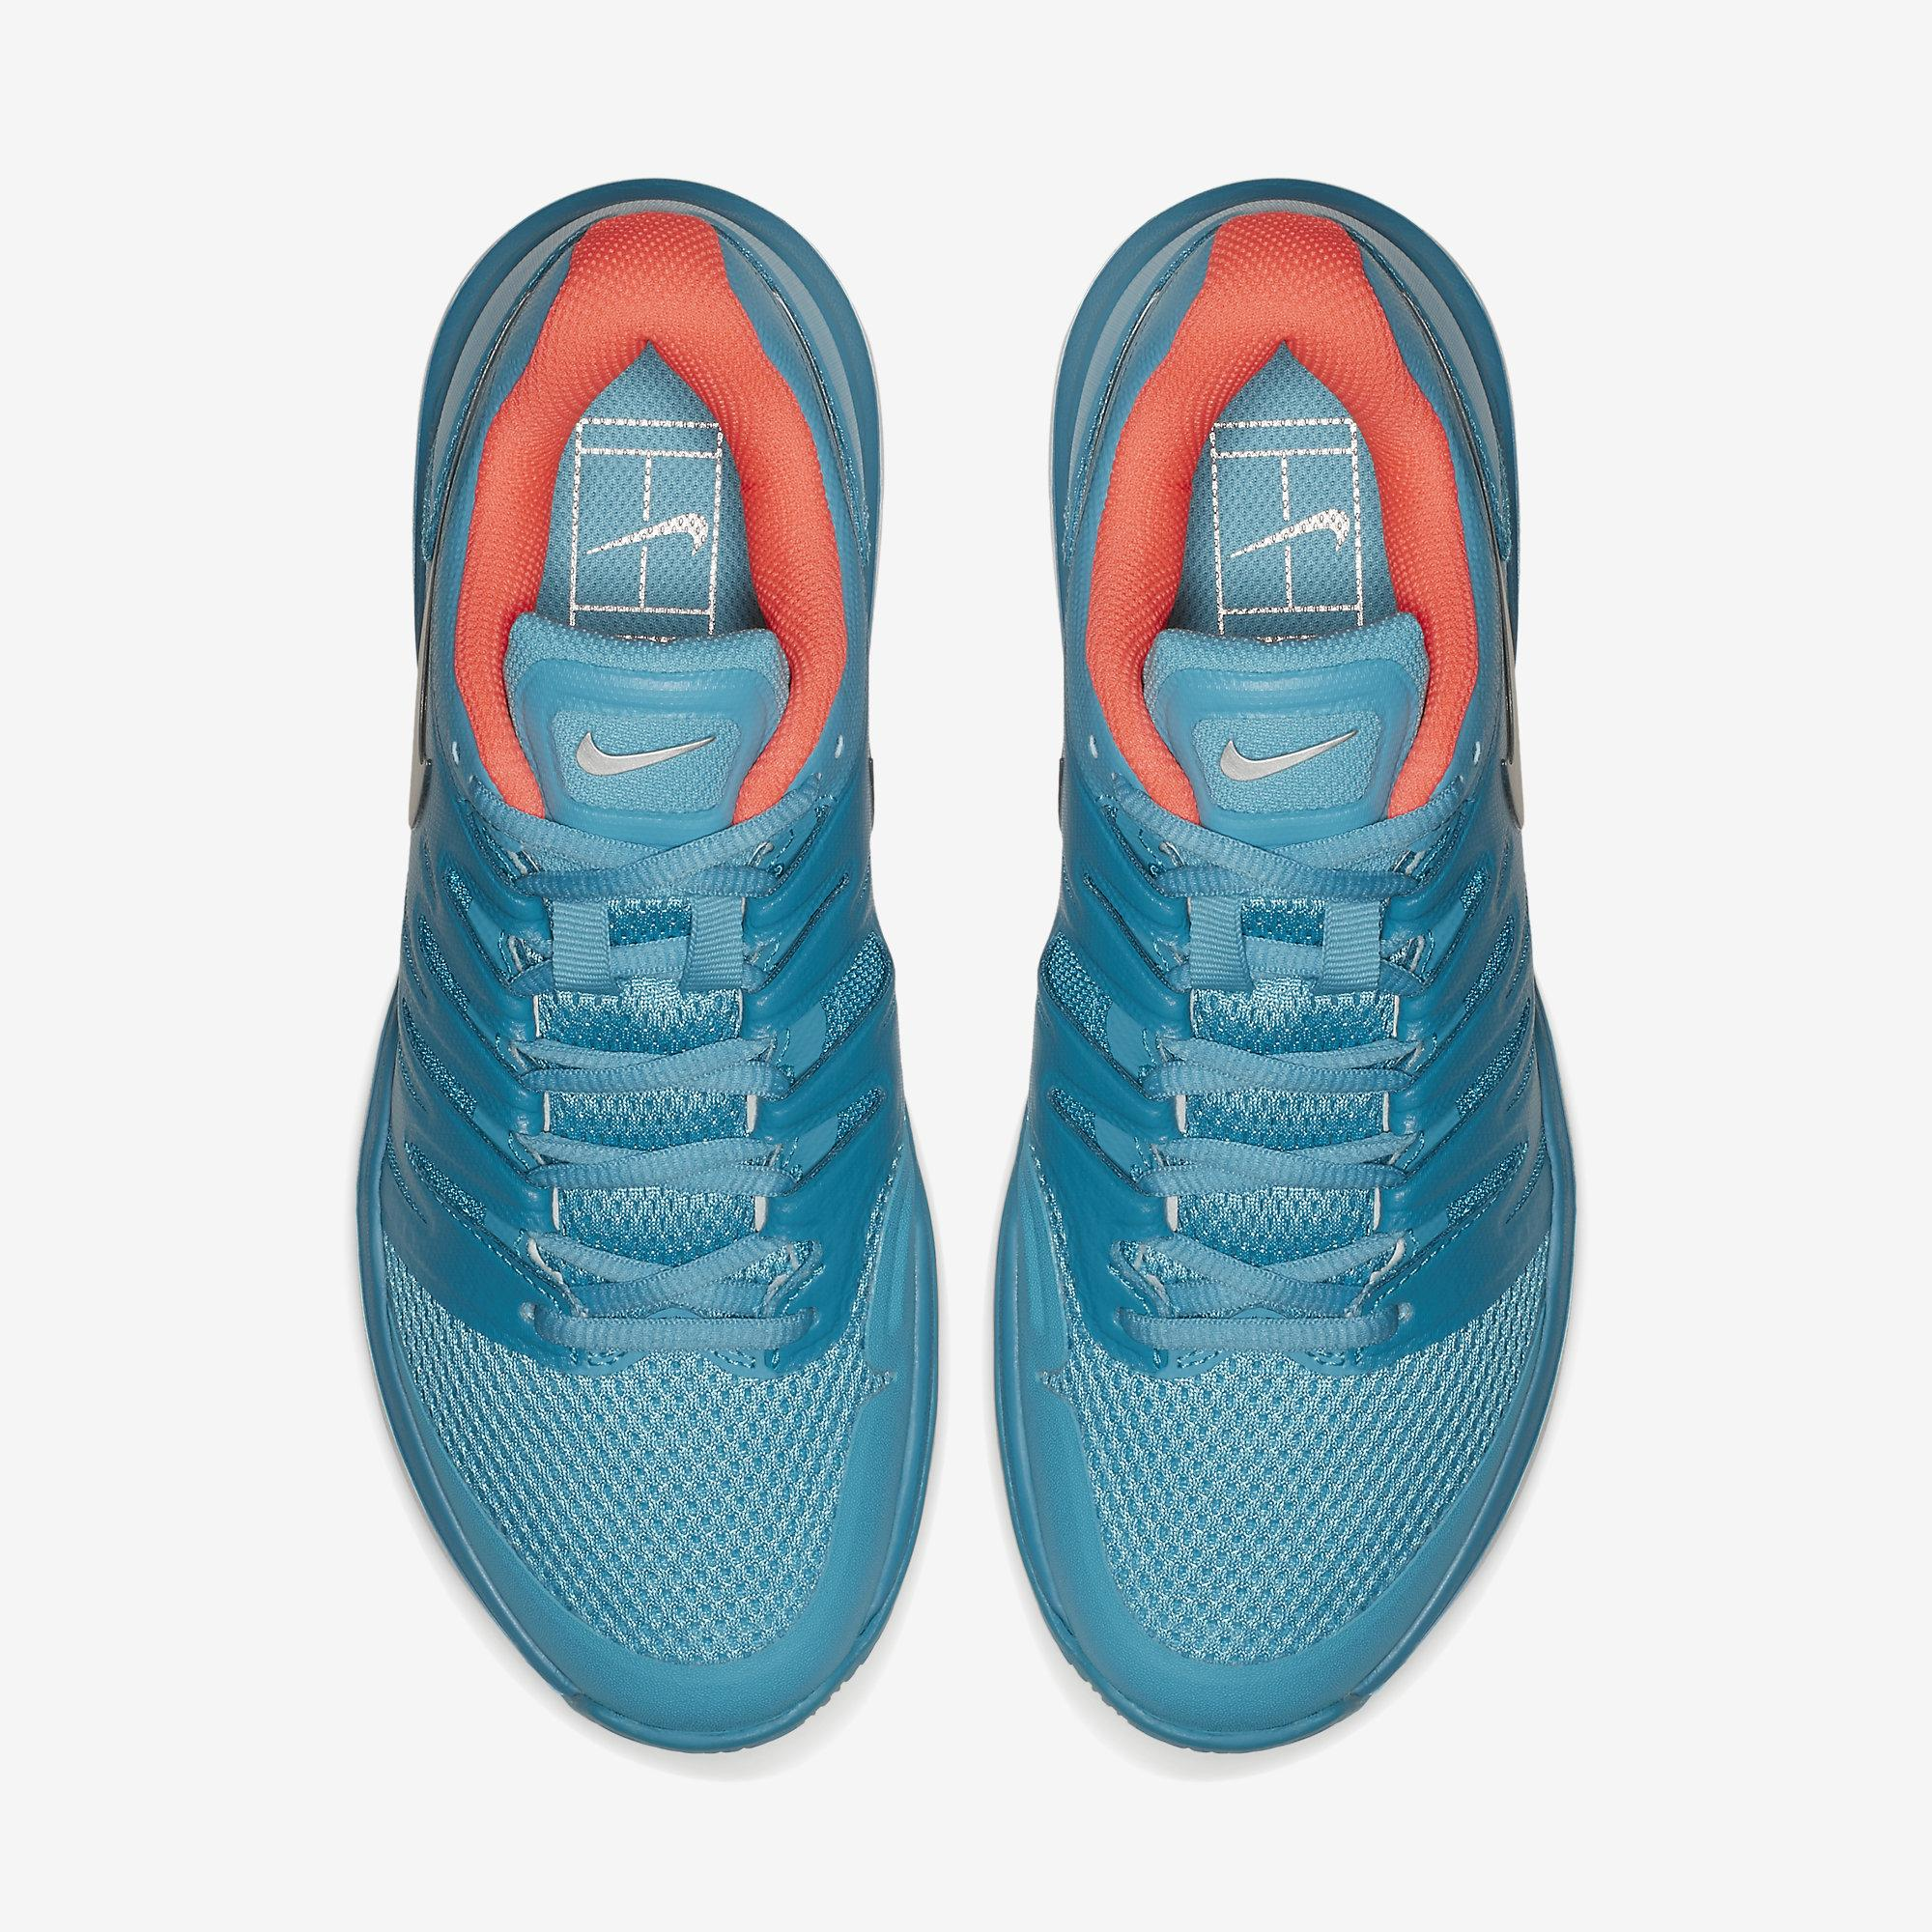 super popular 4357a 7661c Nike Womens Air Zoom Prestige Tennis Shoes - Light Blue FuryNeo Turquoise